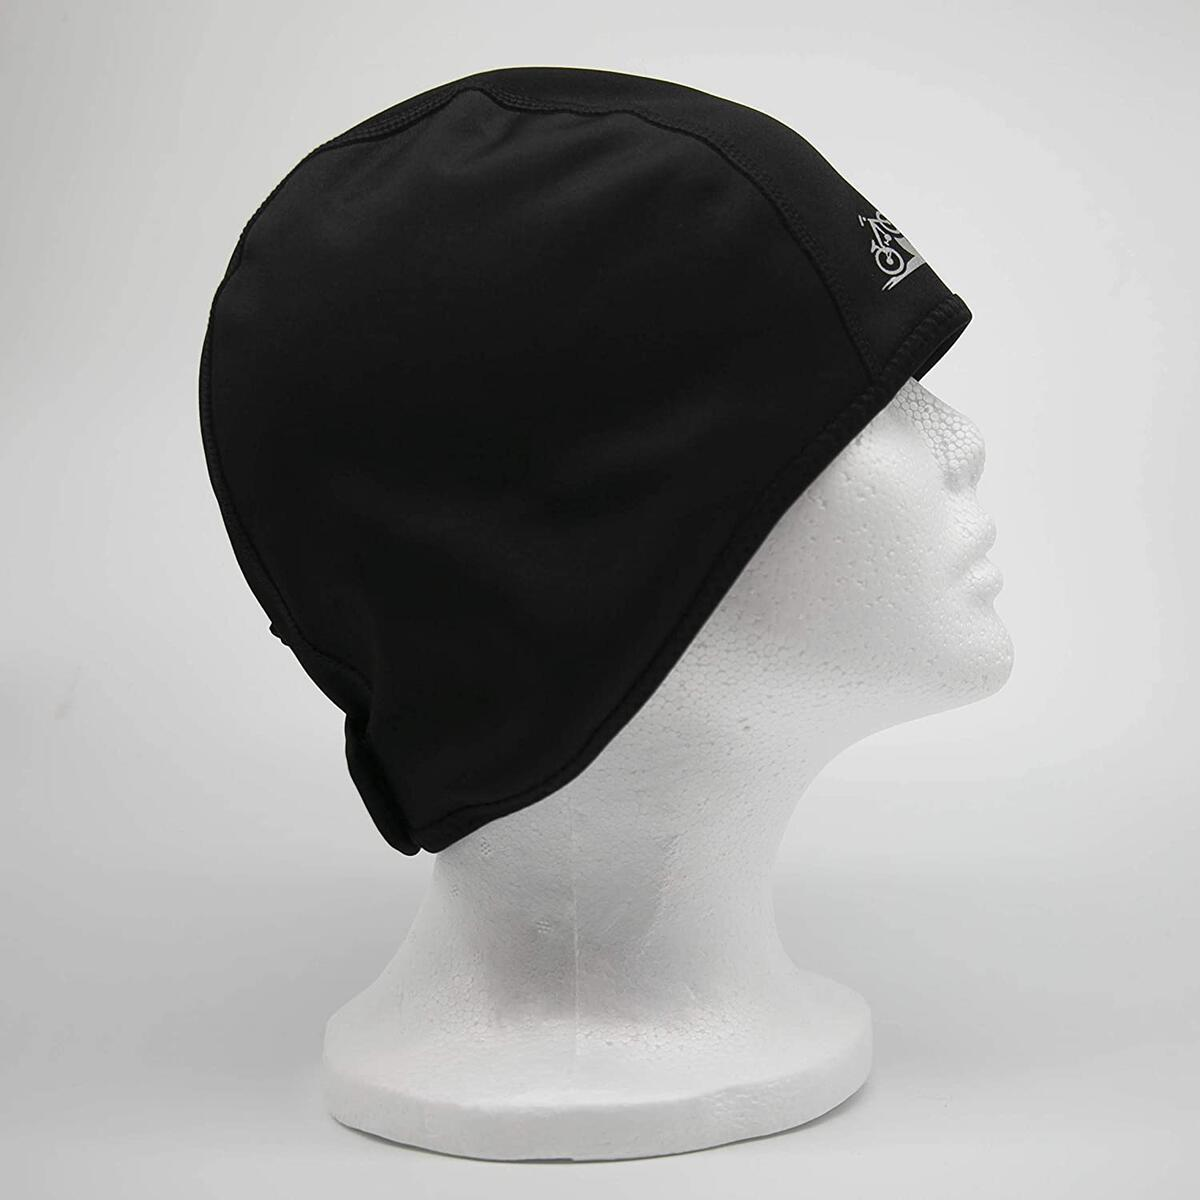 Adjustable Thermal Skull Cap for Cyclists and Runners | Head and Ear Warmer | Fleece Liner Under Helmet | Specialized Black Skiing Headband | Warm Breathable Cycling Cap